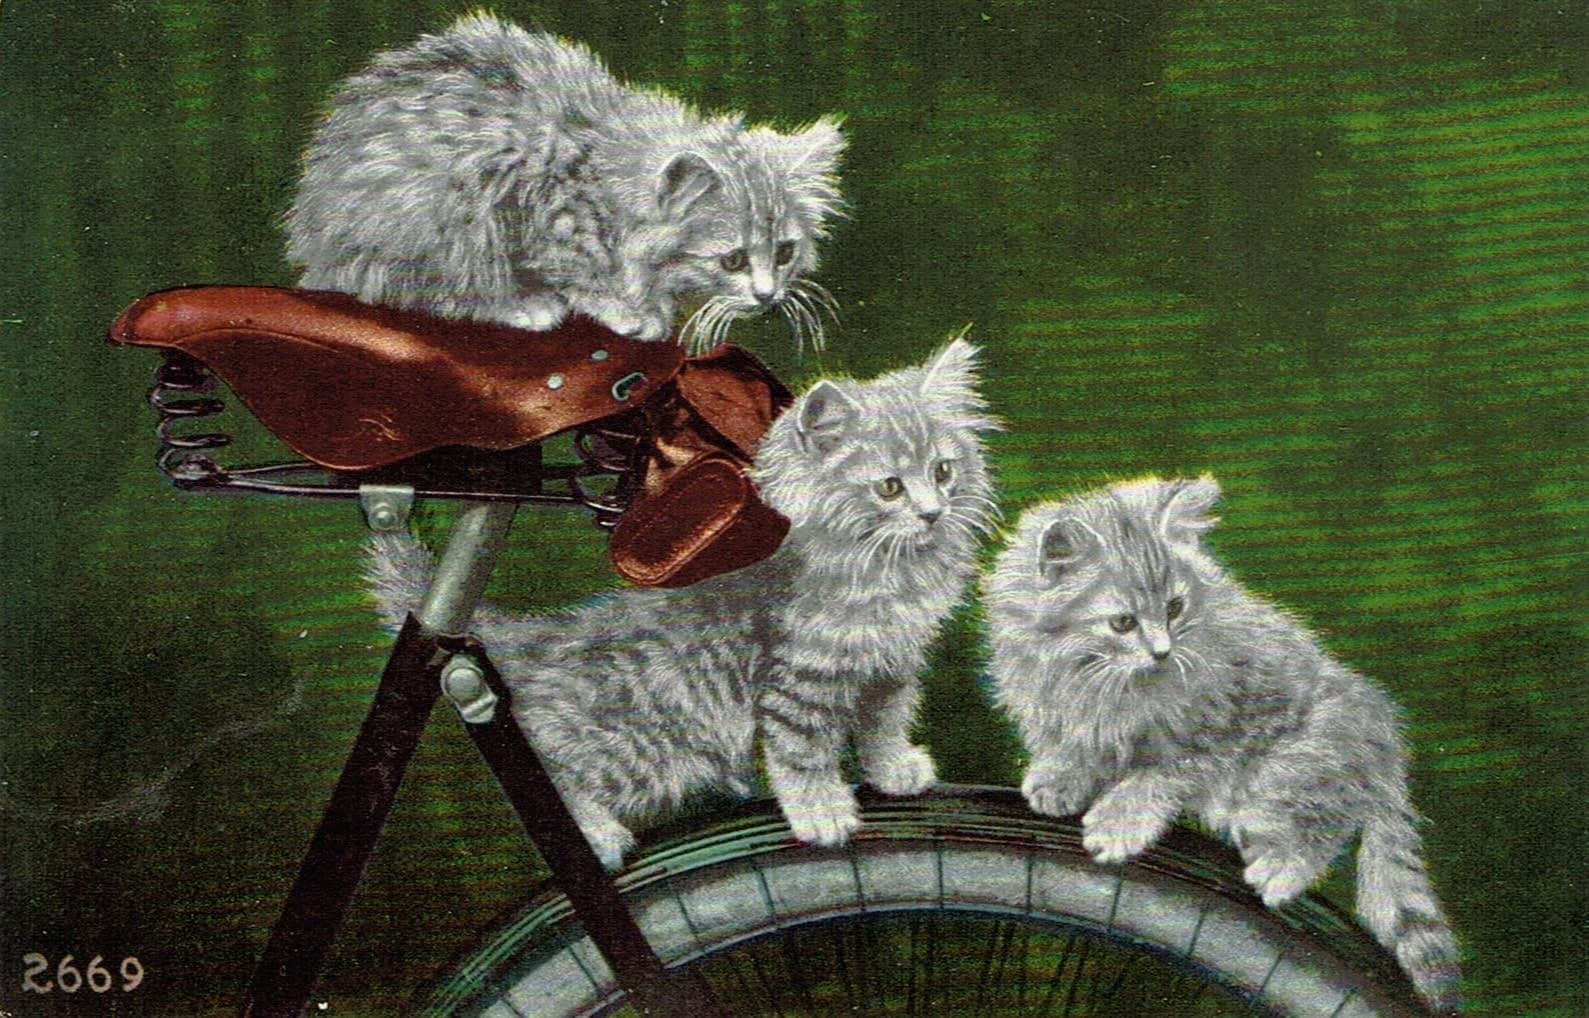 HOW DO I FIND THE RIGHT BIKE SEAT FOR ME? – Three cats on a bicycle answer the question by helping you to find your purrfect saddle.